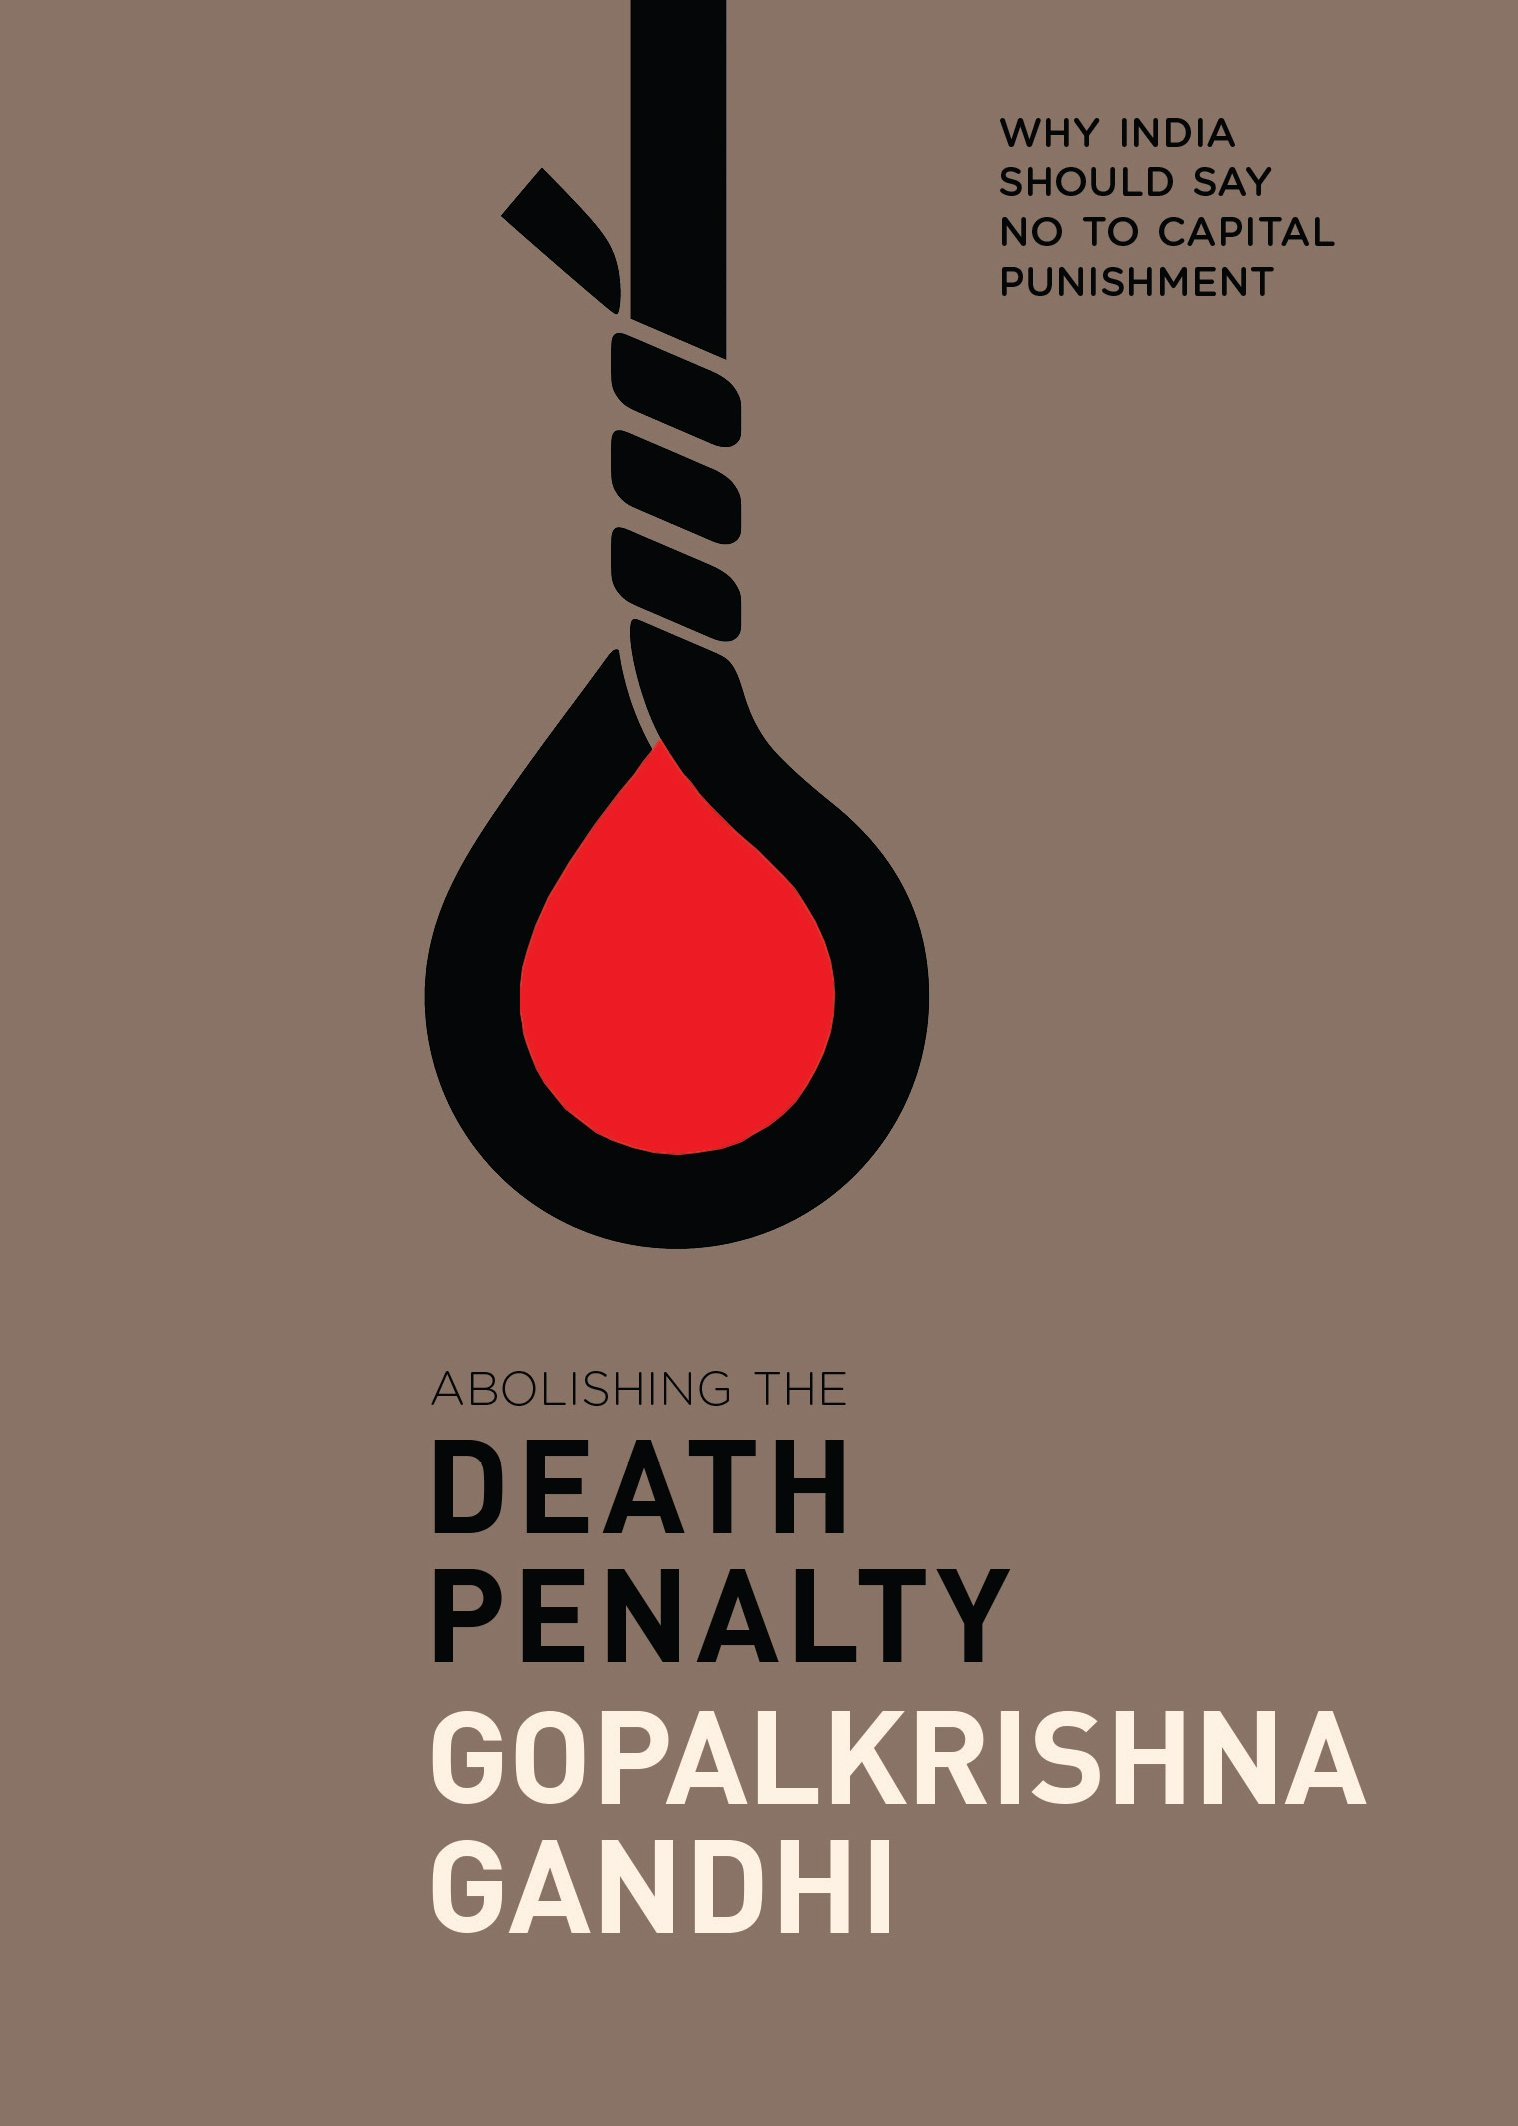 buy abolishing the death penalty why should say no to  buy abolishing the death penalty why should say no to capital punishment book online at low prices in abolishing the death penalty why